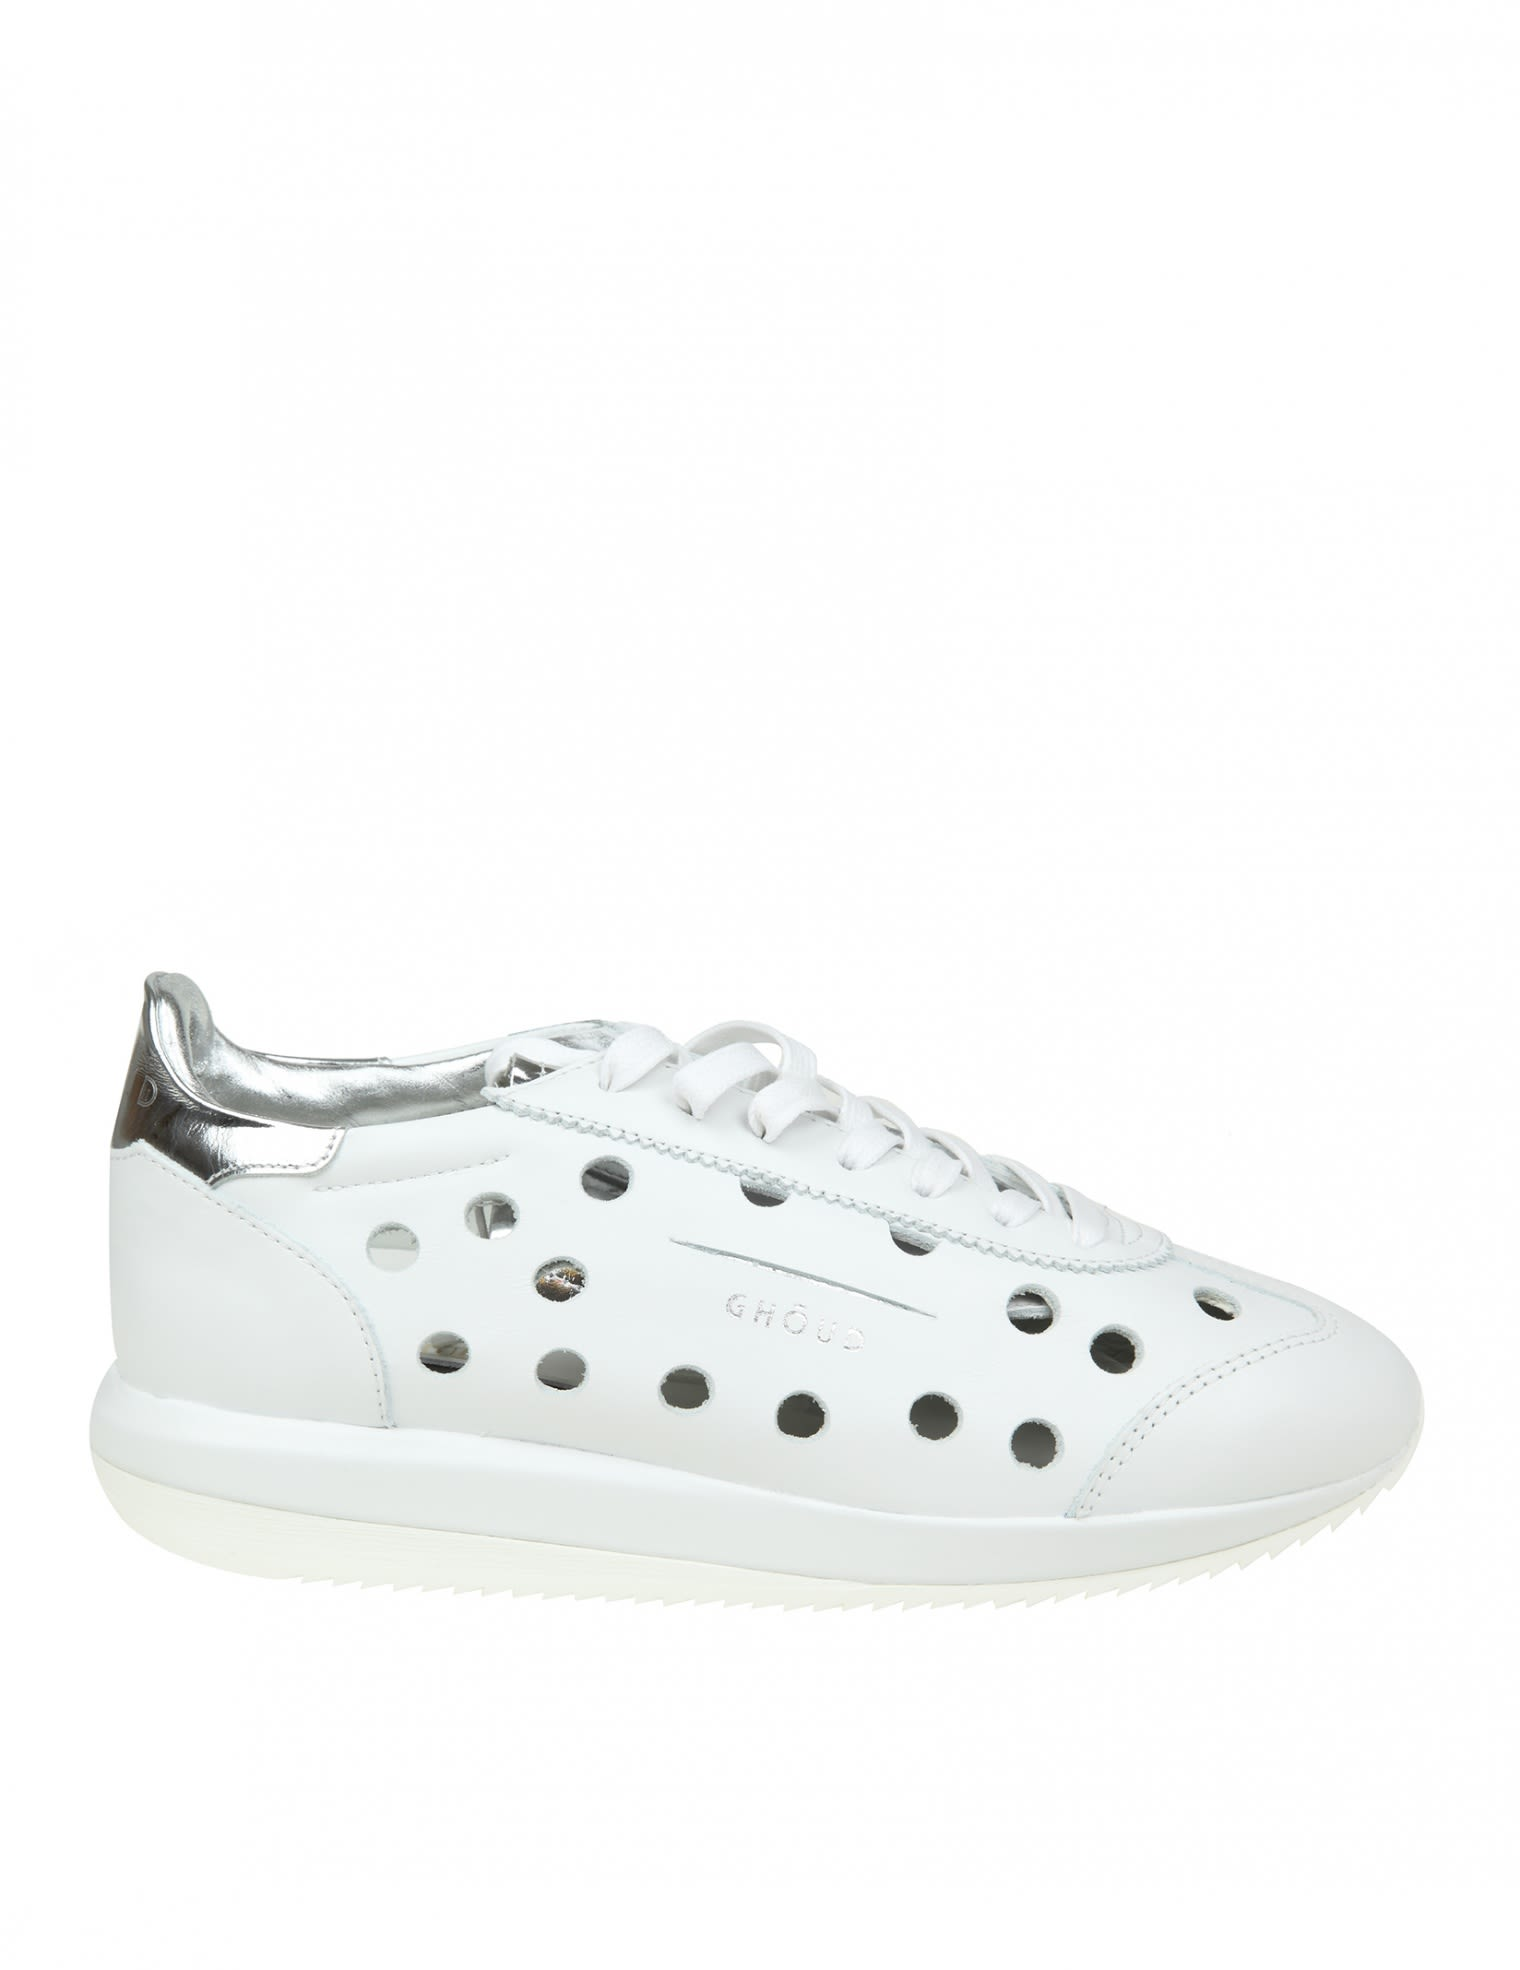 Sneakernews Sale Online Ghoud Sneakers In White Perforated Leather Quality Free Shipping FvES47HA7